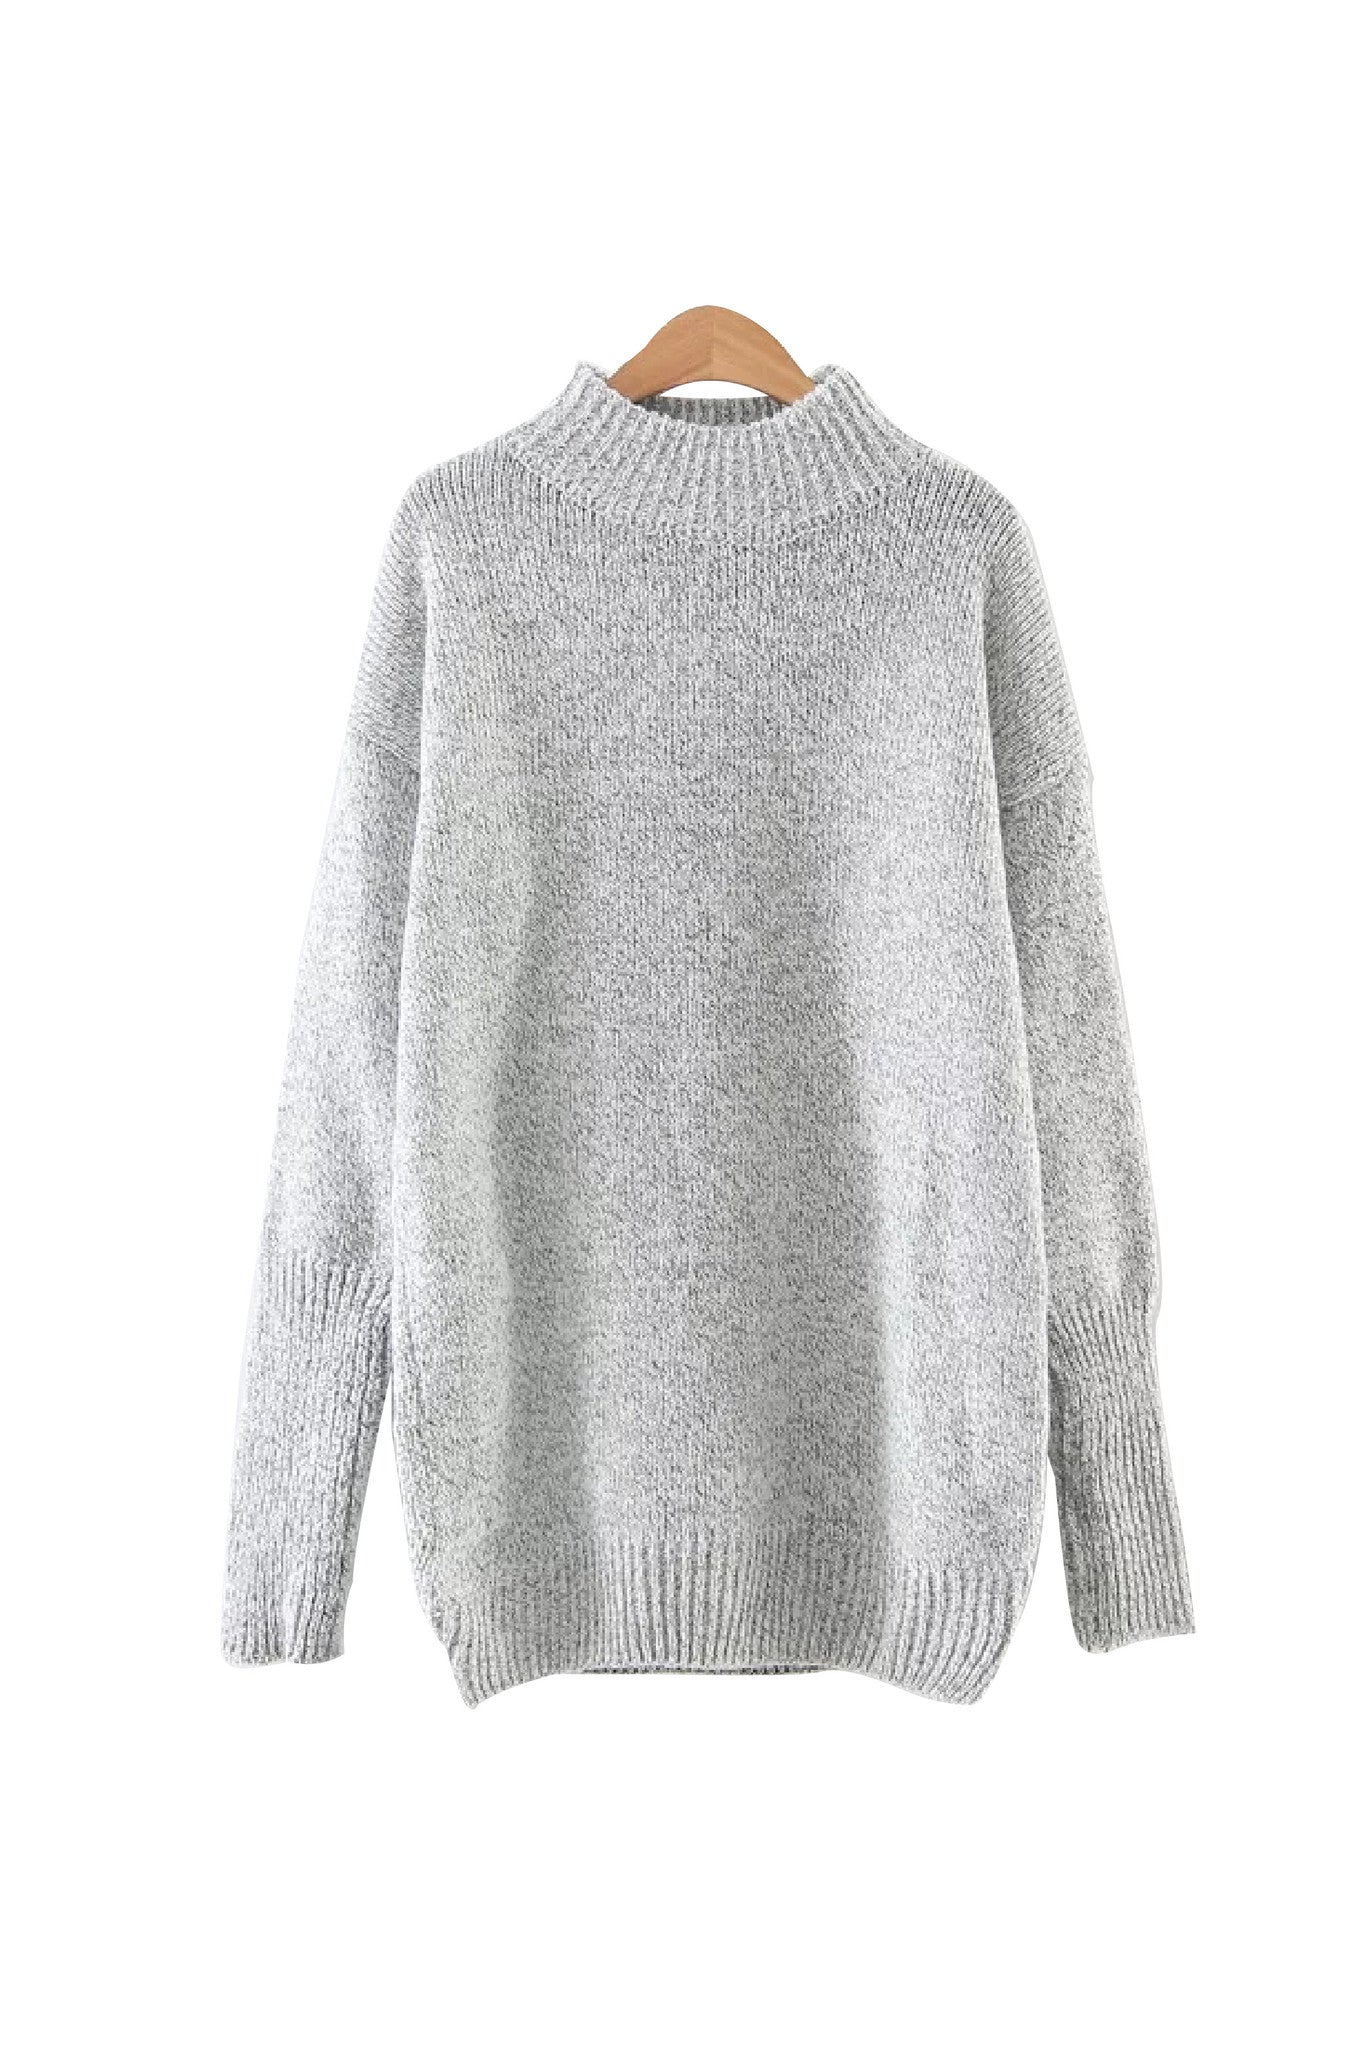 'Nevaeh' Textured Knit Crewneck Pullover Gray from Goodnight Macaroon